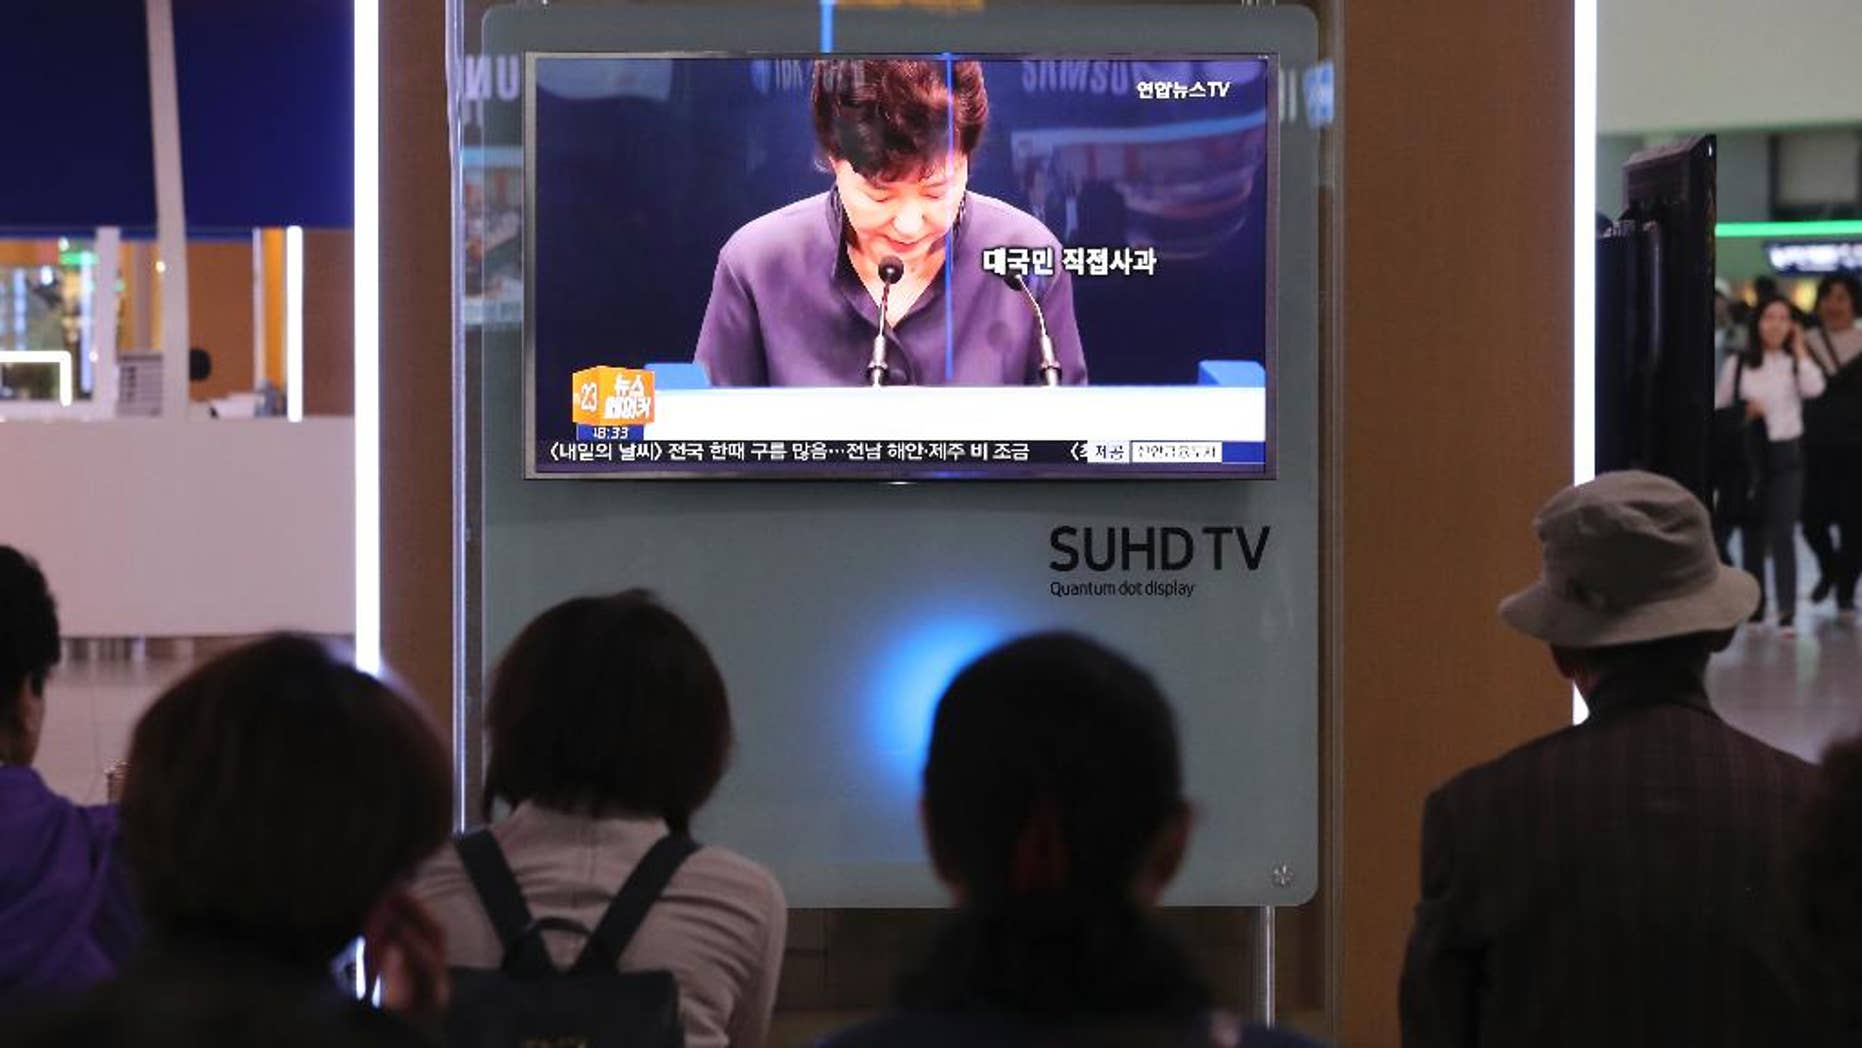 In this Oct. 25, 2016 photo, people watch a TV screen showing the news program about South Korean President Park Geun-hye's apology, at Seoul Railway Station in Seoul, South Korea. To outsiders, the frenzy that has erupted here may not seem to match this week's acknowledgment by South Korean President Park that she got help, including the editing of some of her speeches, from a mysterious woman outside of the government.  But Park's surprise televised address has created one of the biggest challenges of her four years in power - and touched a deep chord in this divided nation.  (AP Photo/Lee Jin-man)